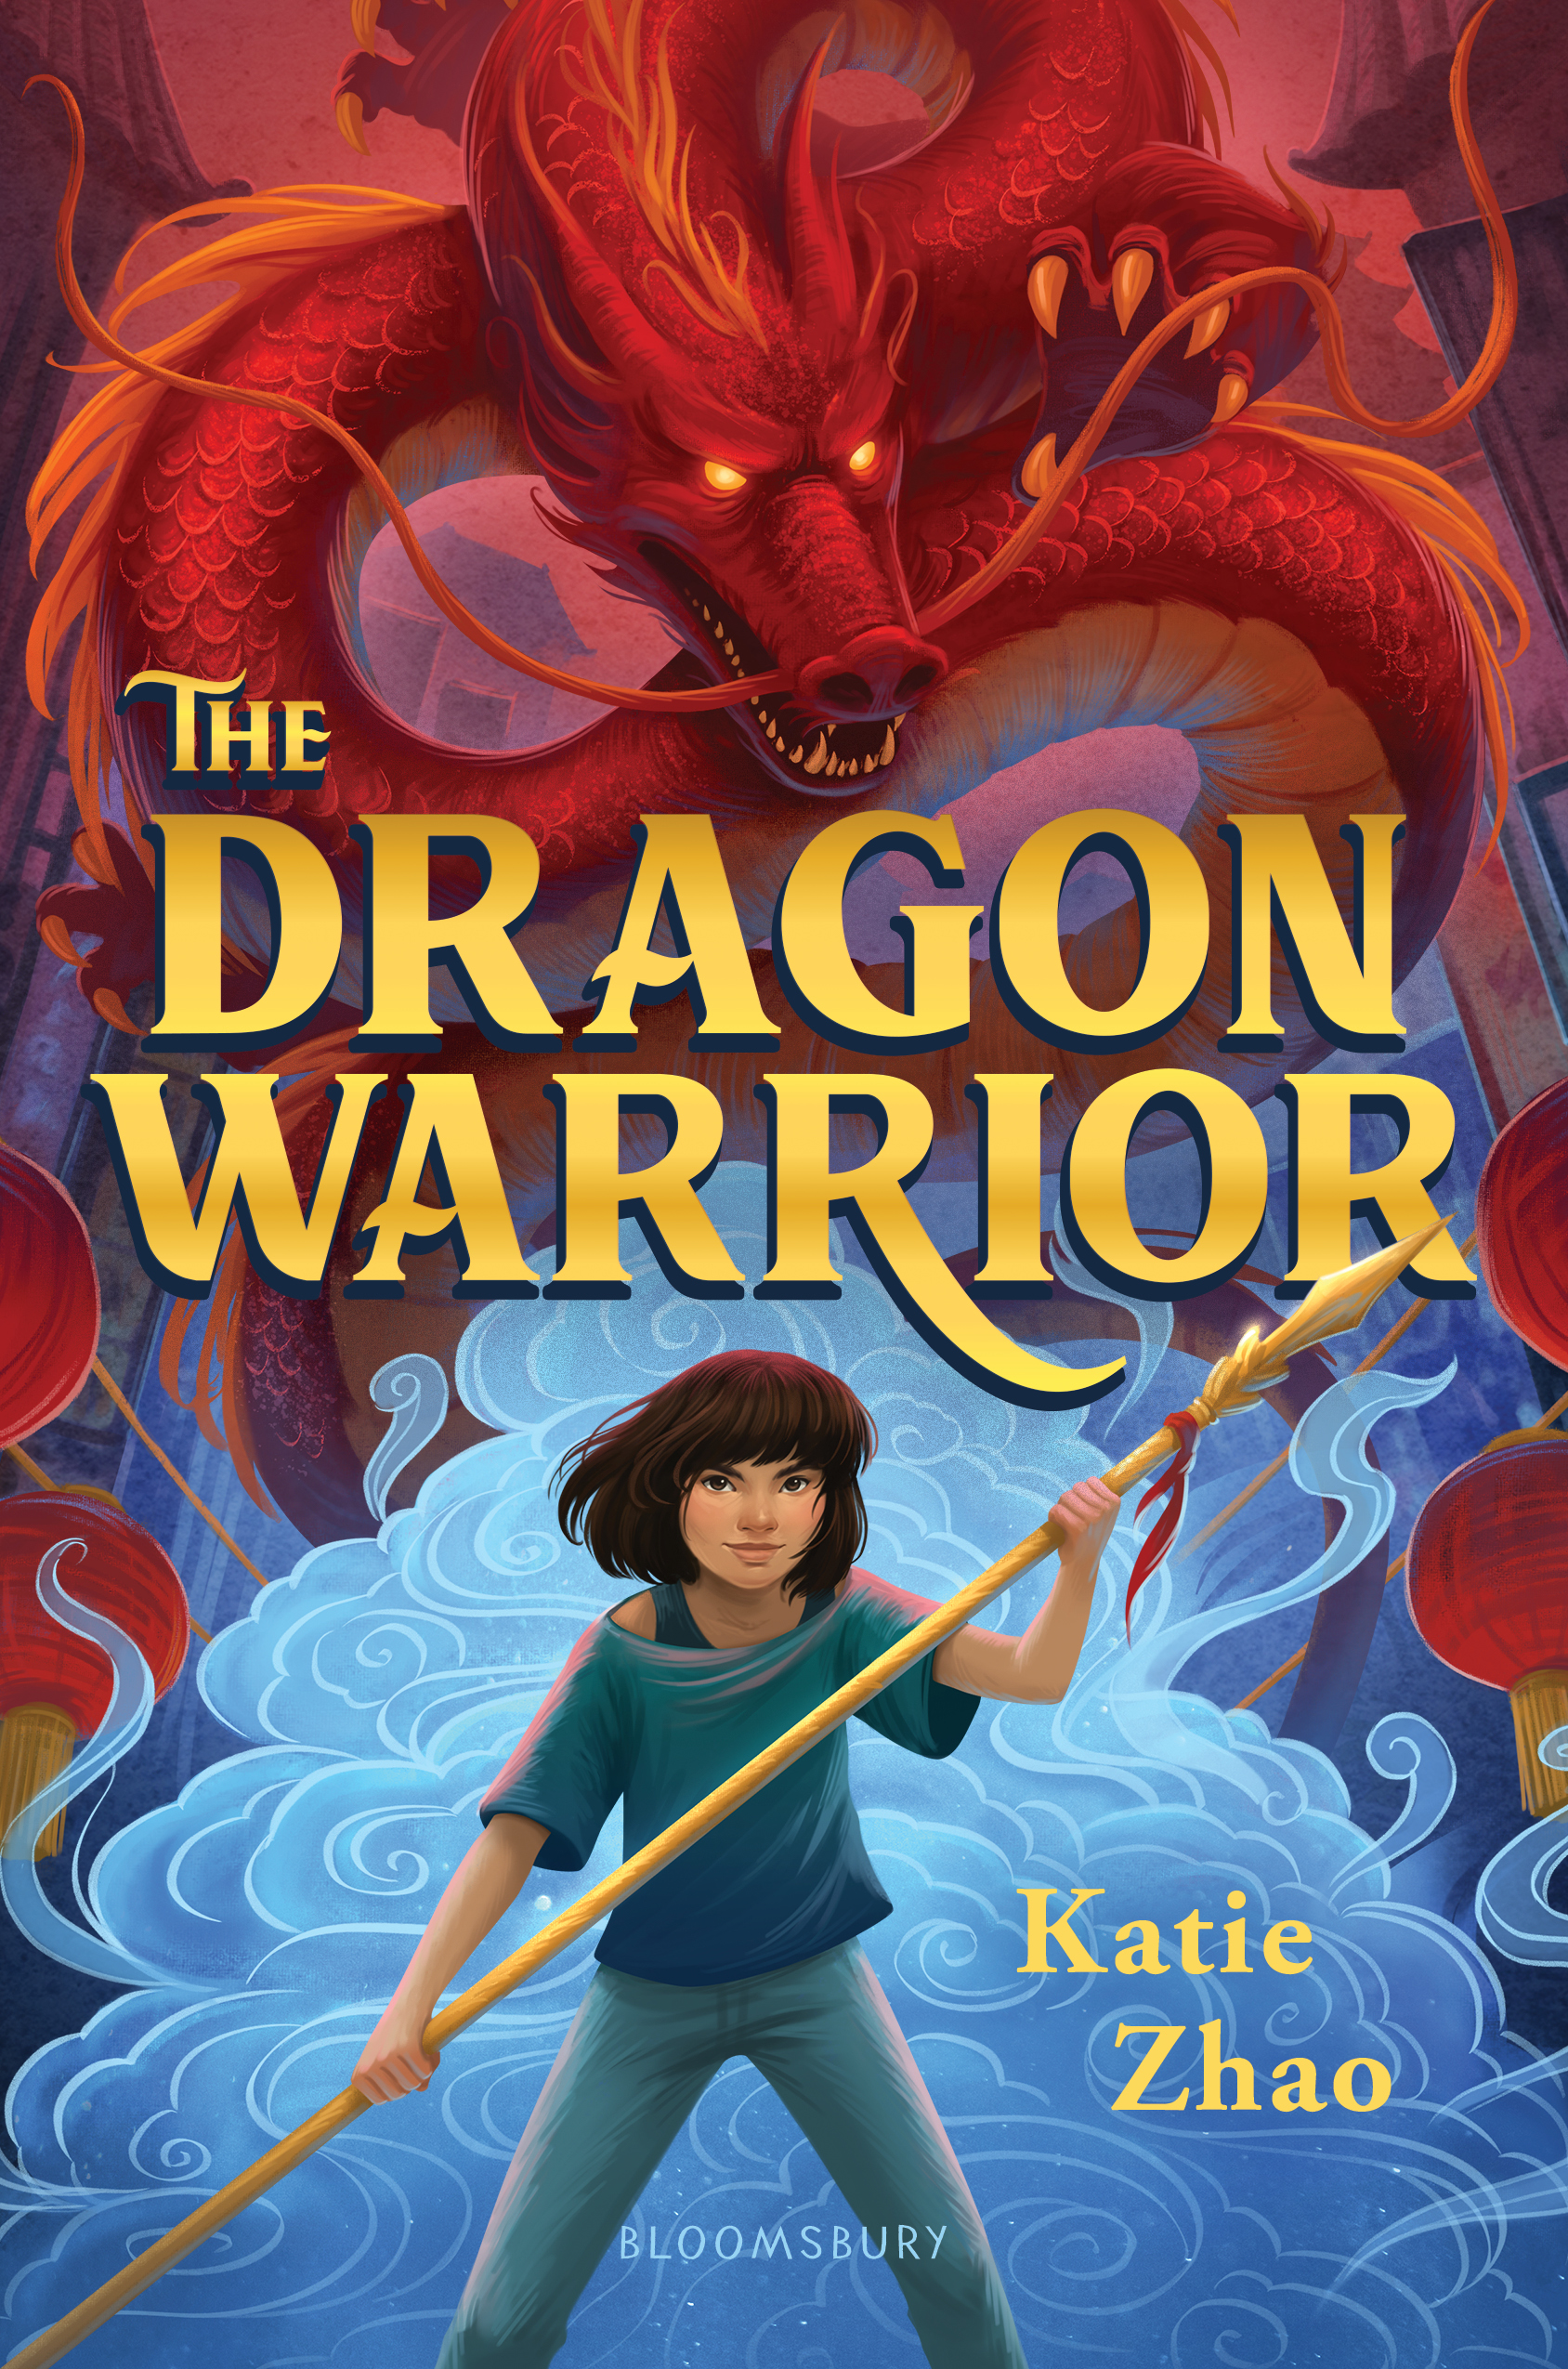 THE DRAGON WARRIOR is to be released on October 15, 2019 by Bloomsbury Kids USA.